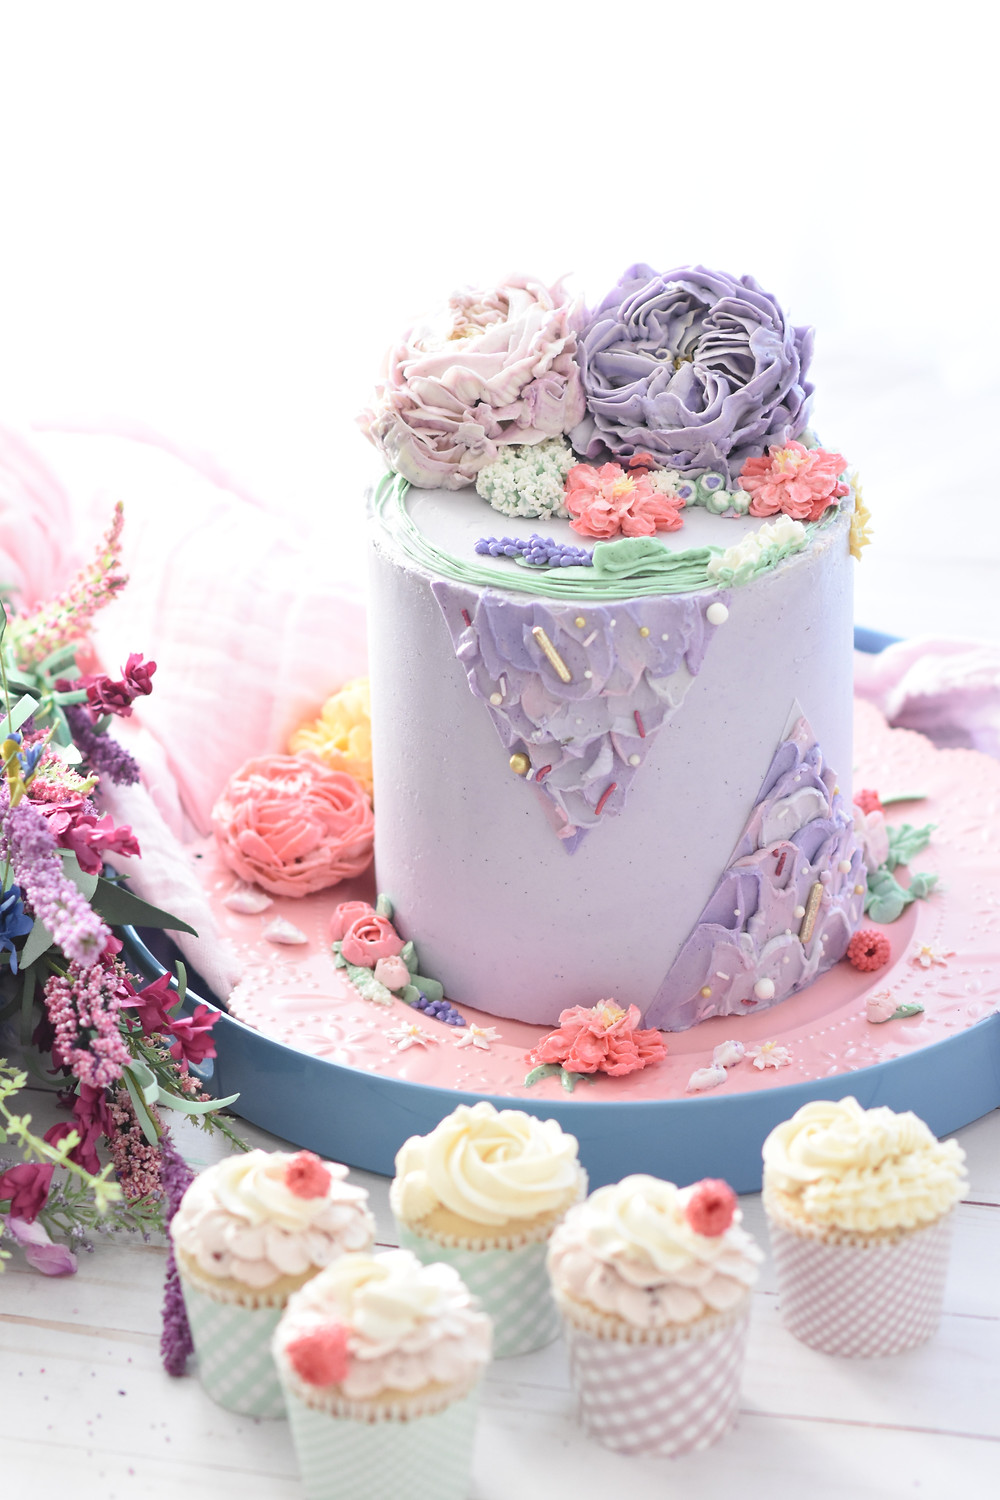 Baby shower lilac cake with flowers and cupcakes